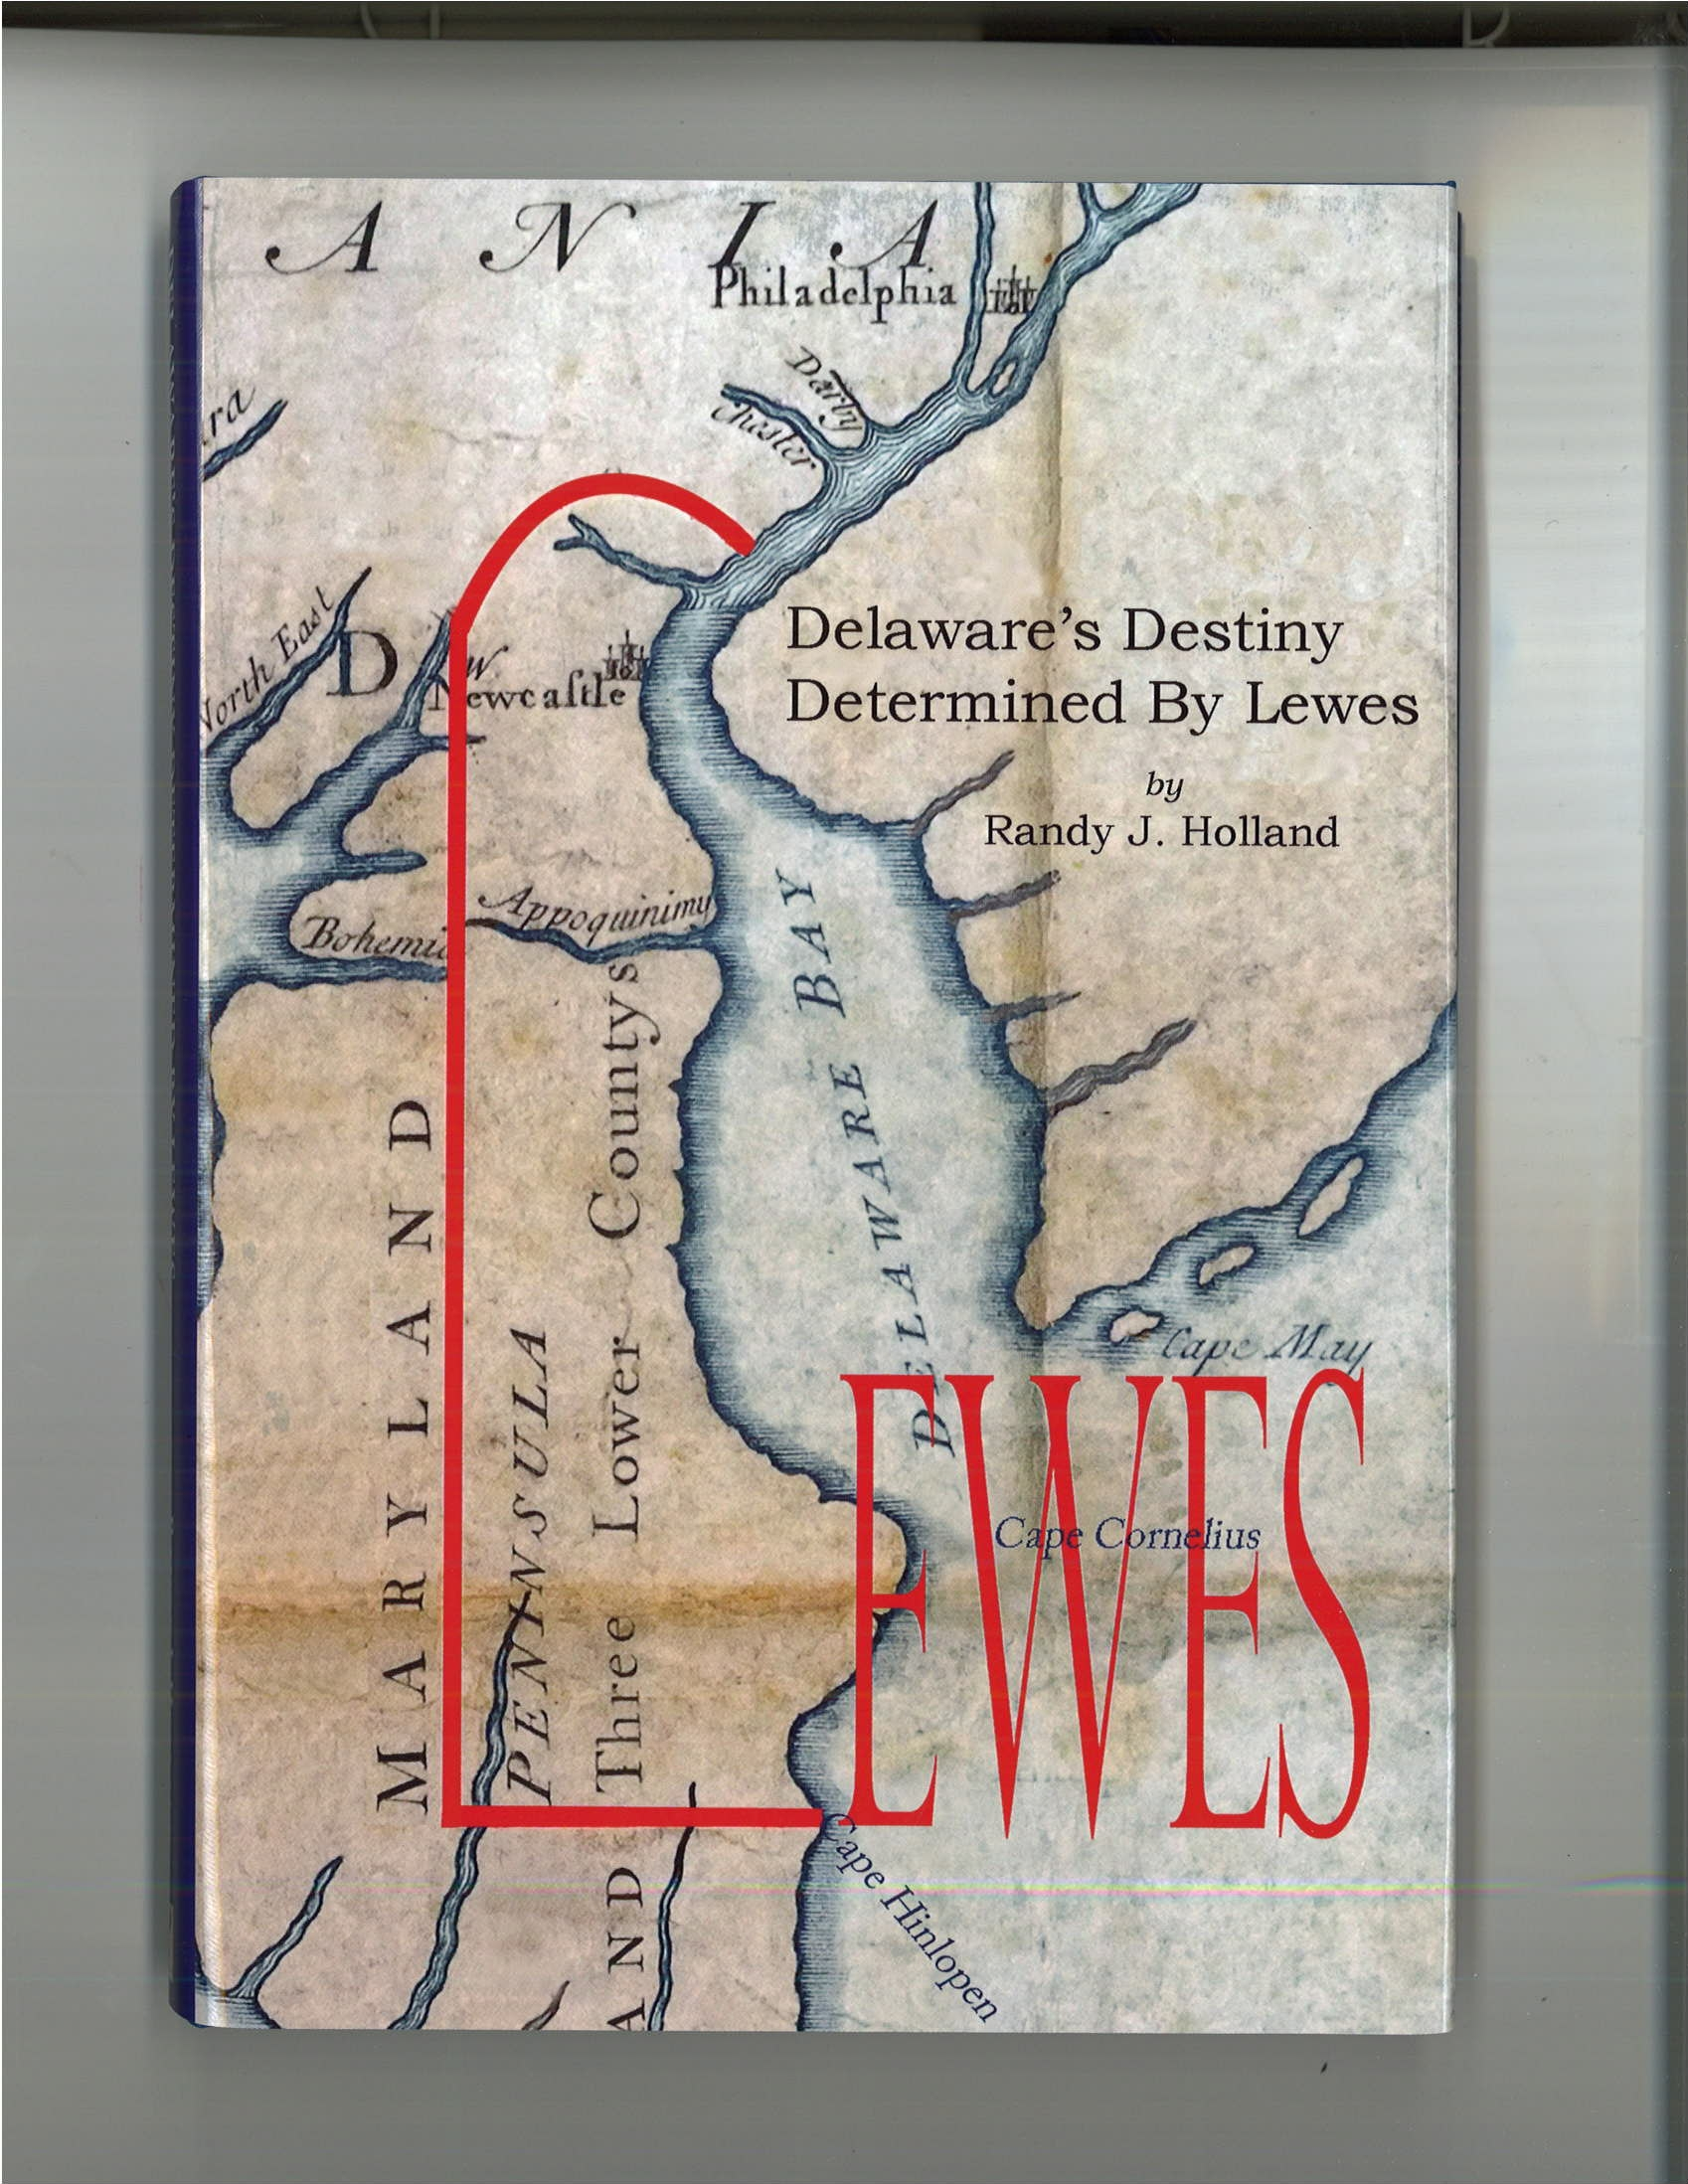 Delaware's Destiny Determined By Lewes, by Randy J. Holland, 2013, 152 pp., HARDCOVER Prices reflect the cost of the book PLUS S&H fee of $5.00.